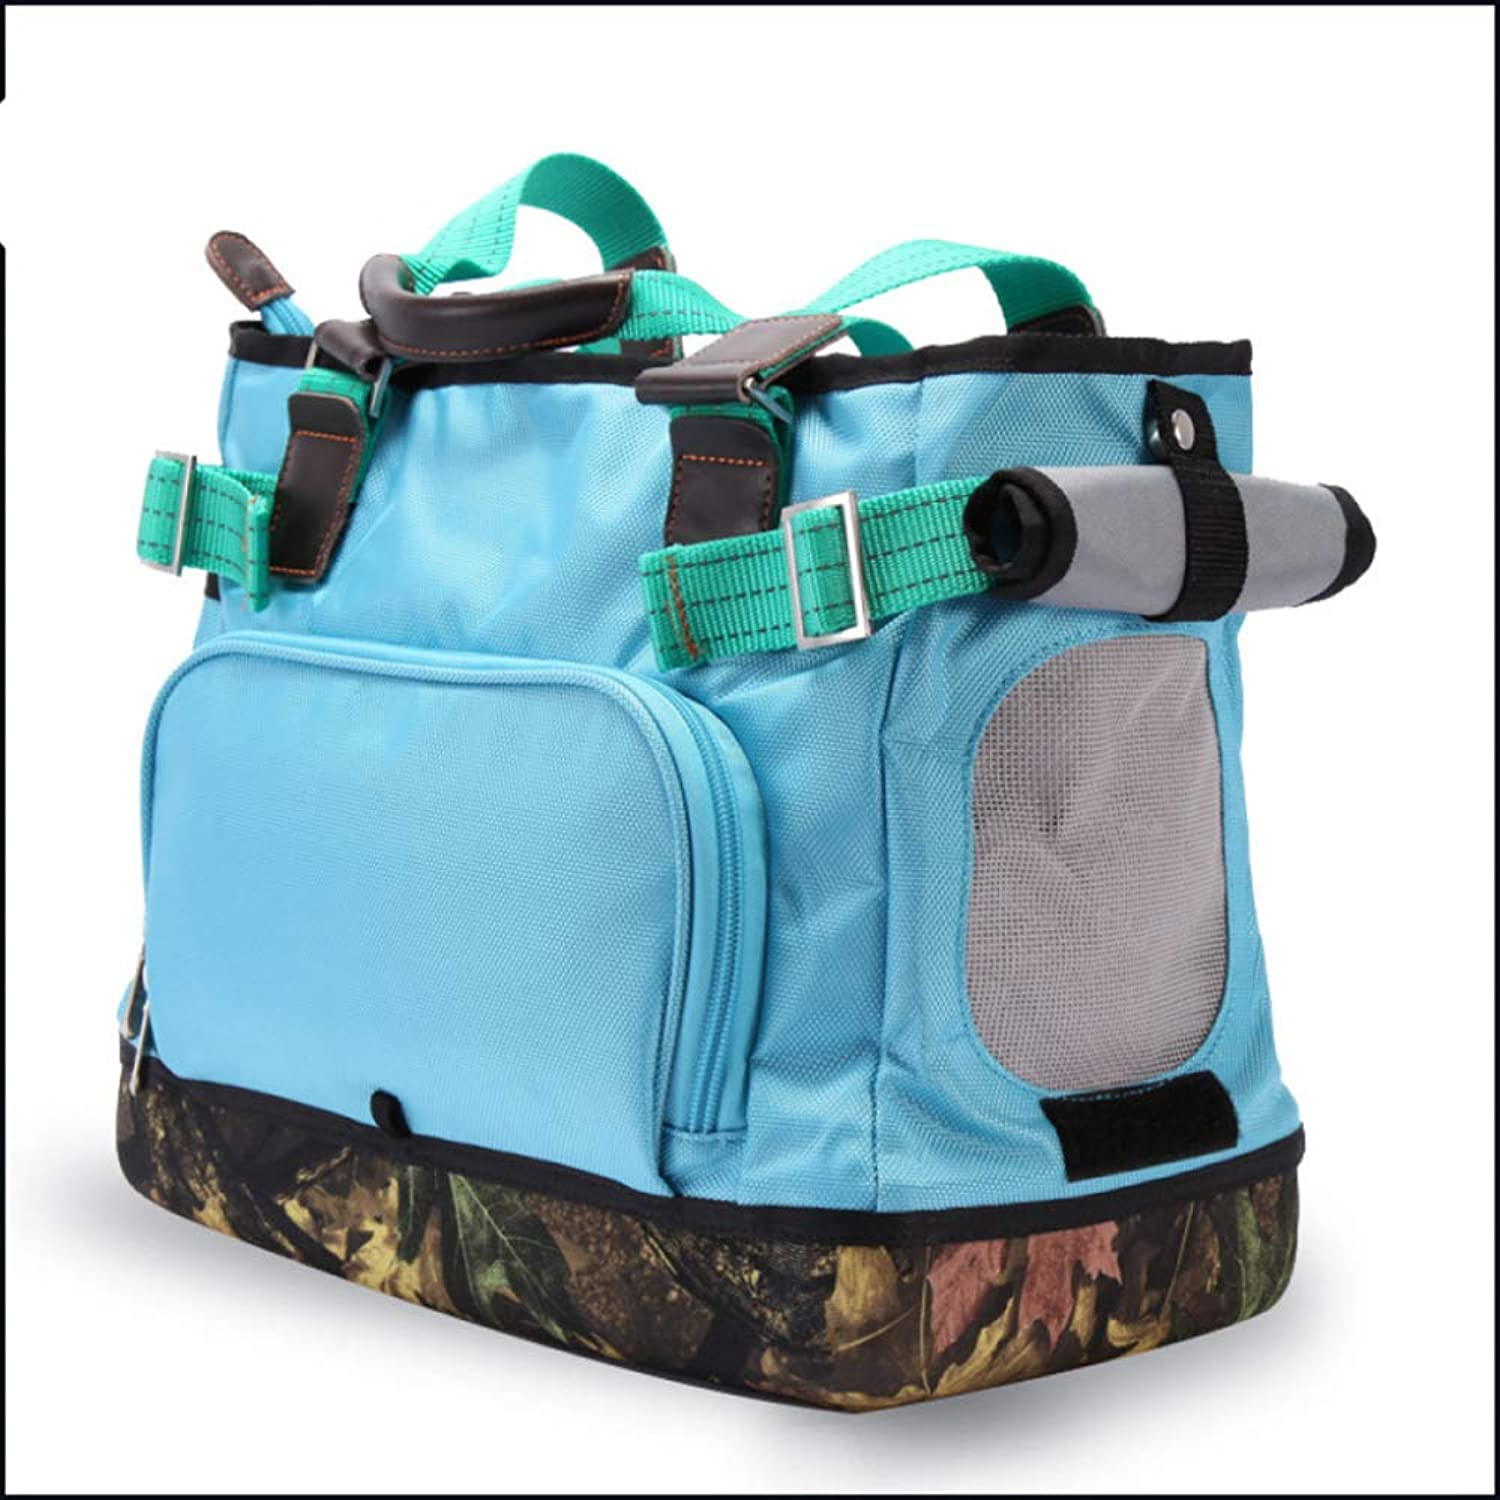 CTAO Portable Pet Travel Carrier Backpack For Cats Small Medium Dogs Pets Larger Space Capsule Breathable 36  20  30cm,blueedepth30cm